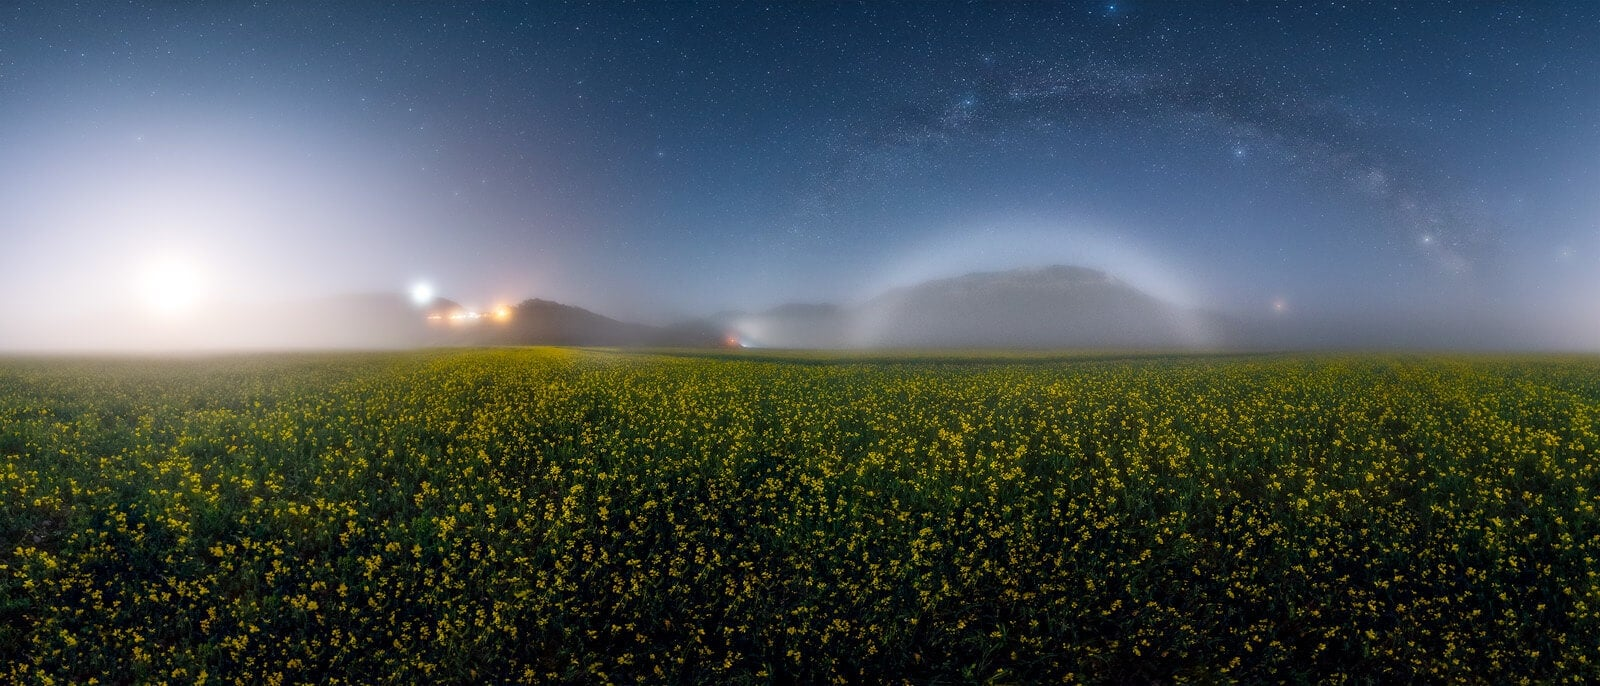 flowery field with fog and stars